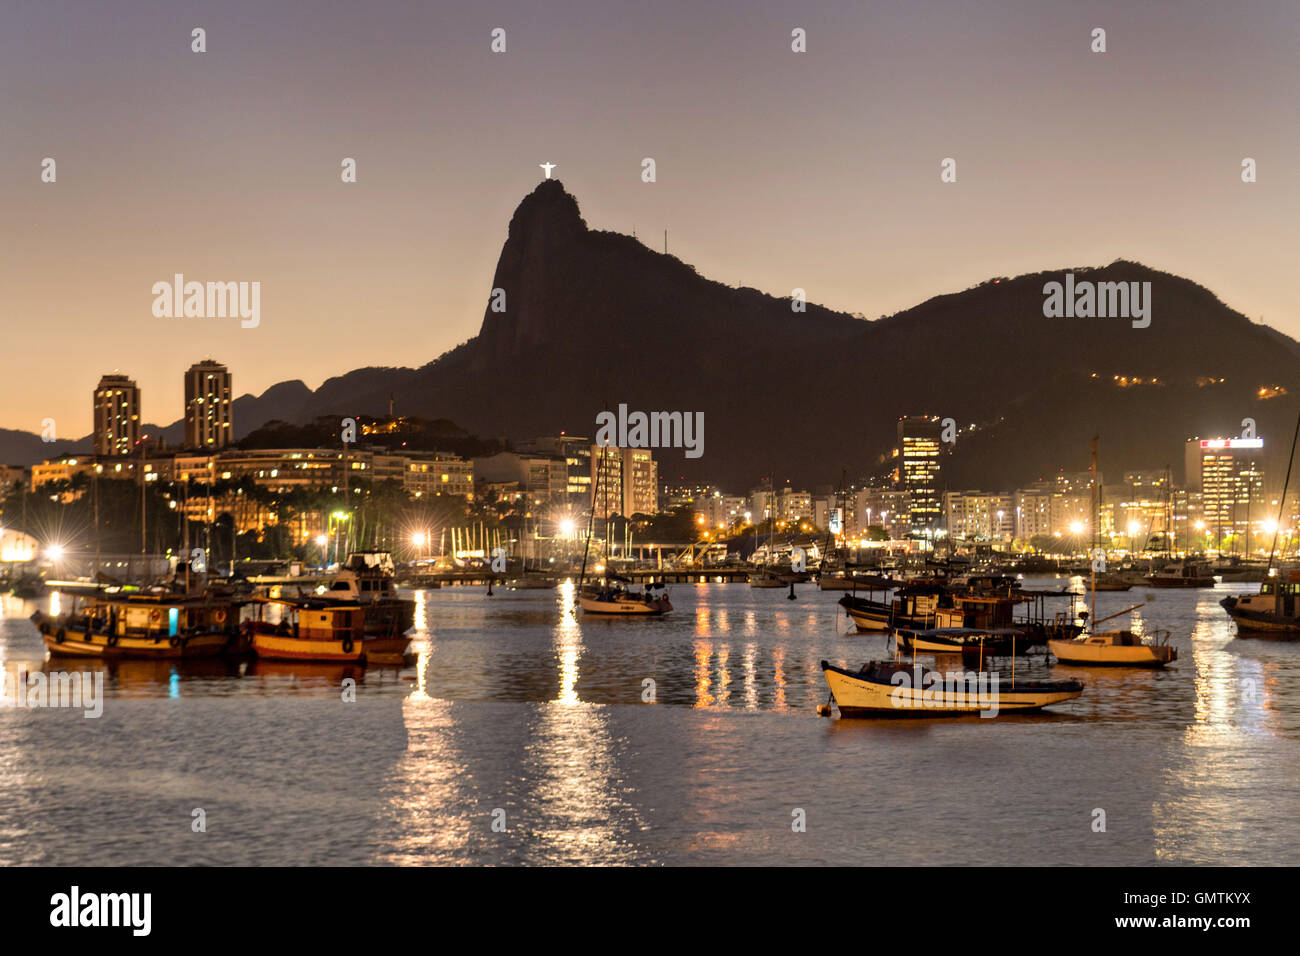 Christ the Redeemer statue is lighted at twilight across seen from across Guanabara Bay at the Urca neighborhood Stock Photo